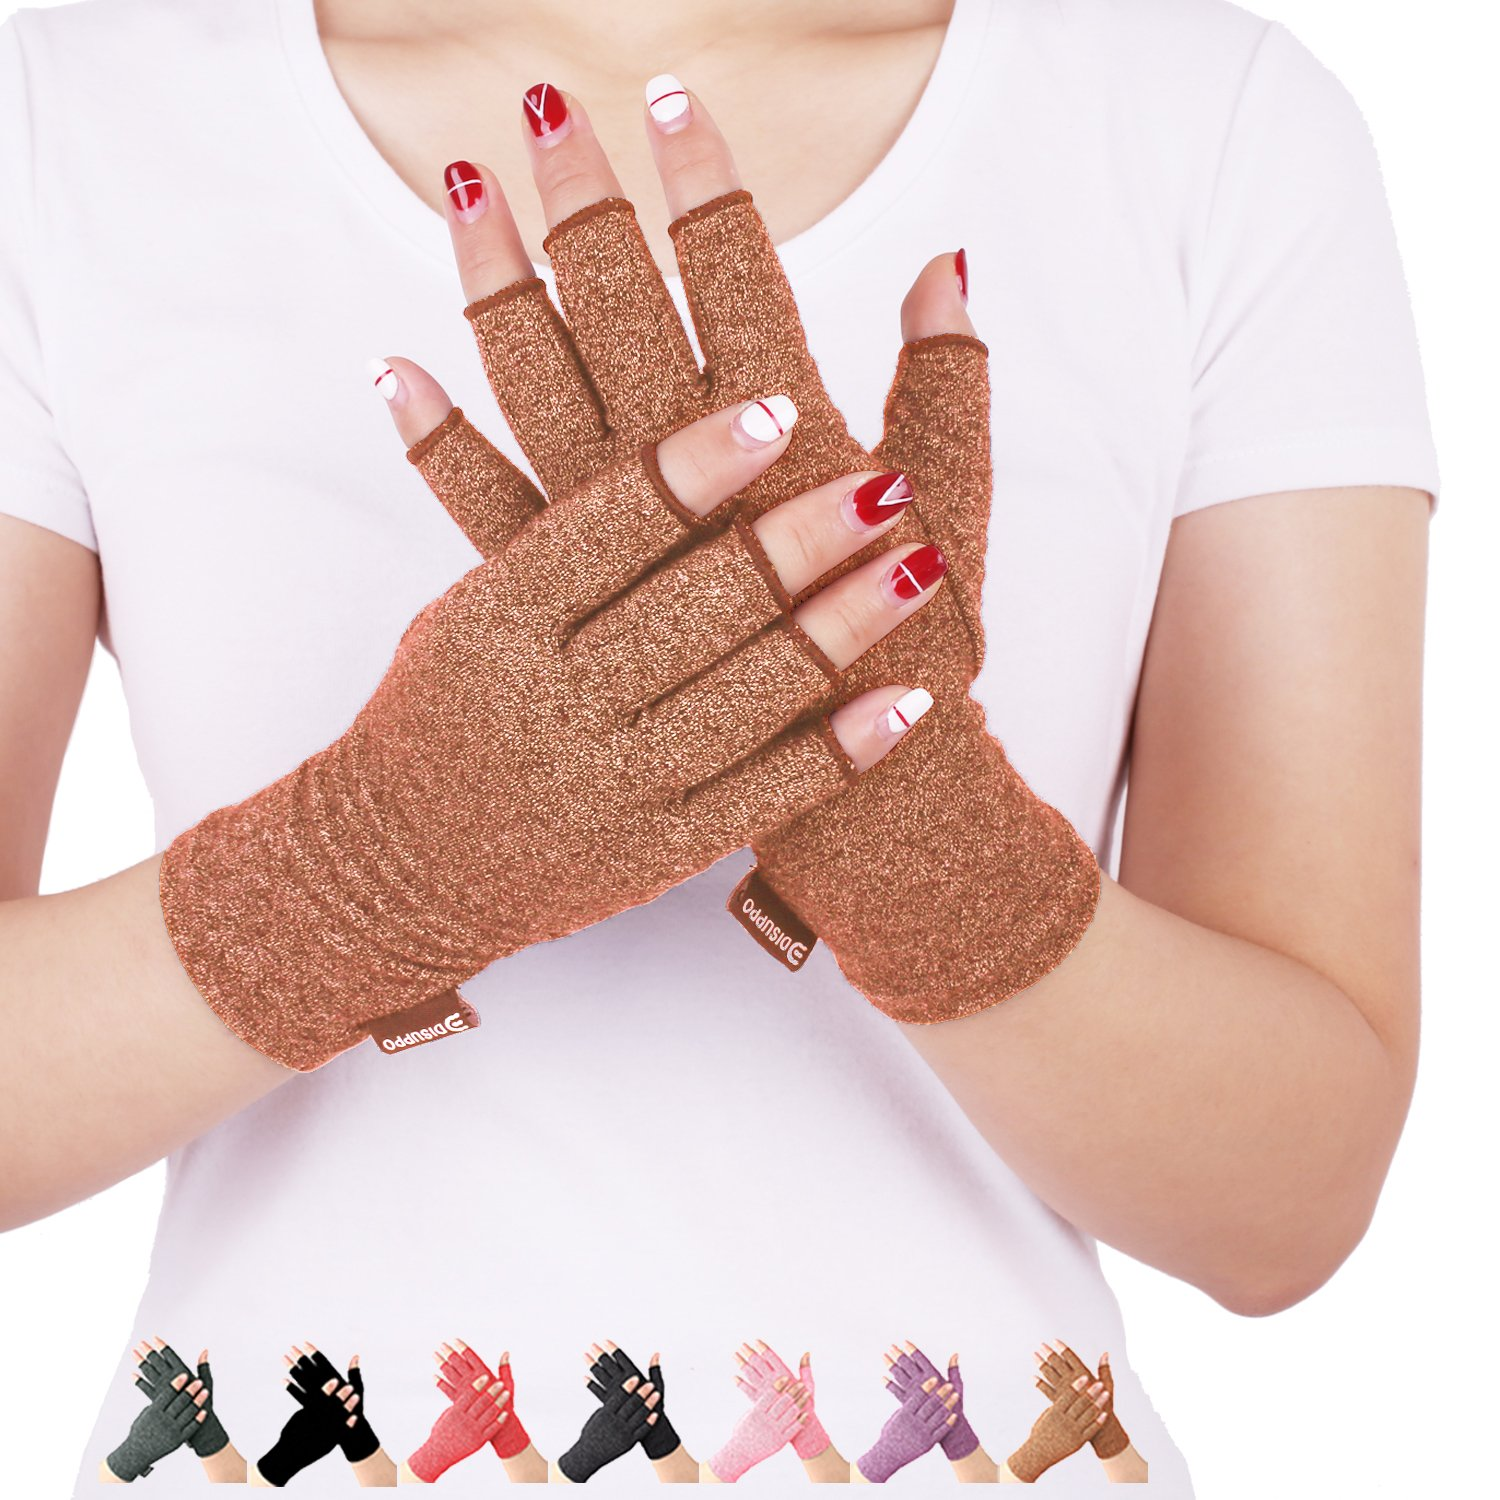 Arthritis Compression Gloves Relieve Pain from Rheumatoid, RSI,Carpal Tunnel, Hand Gloves Fingerless for Computer Typing and Dailywork, Support For Hands And Joints (Brown, Medium)